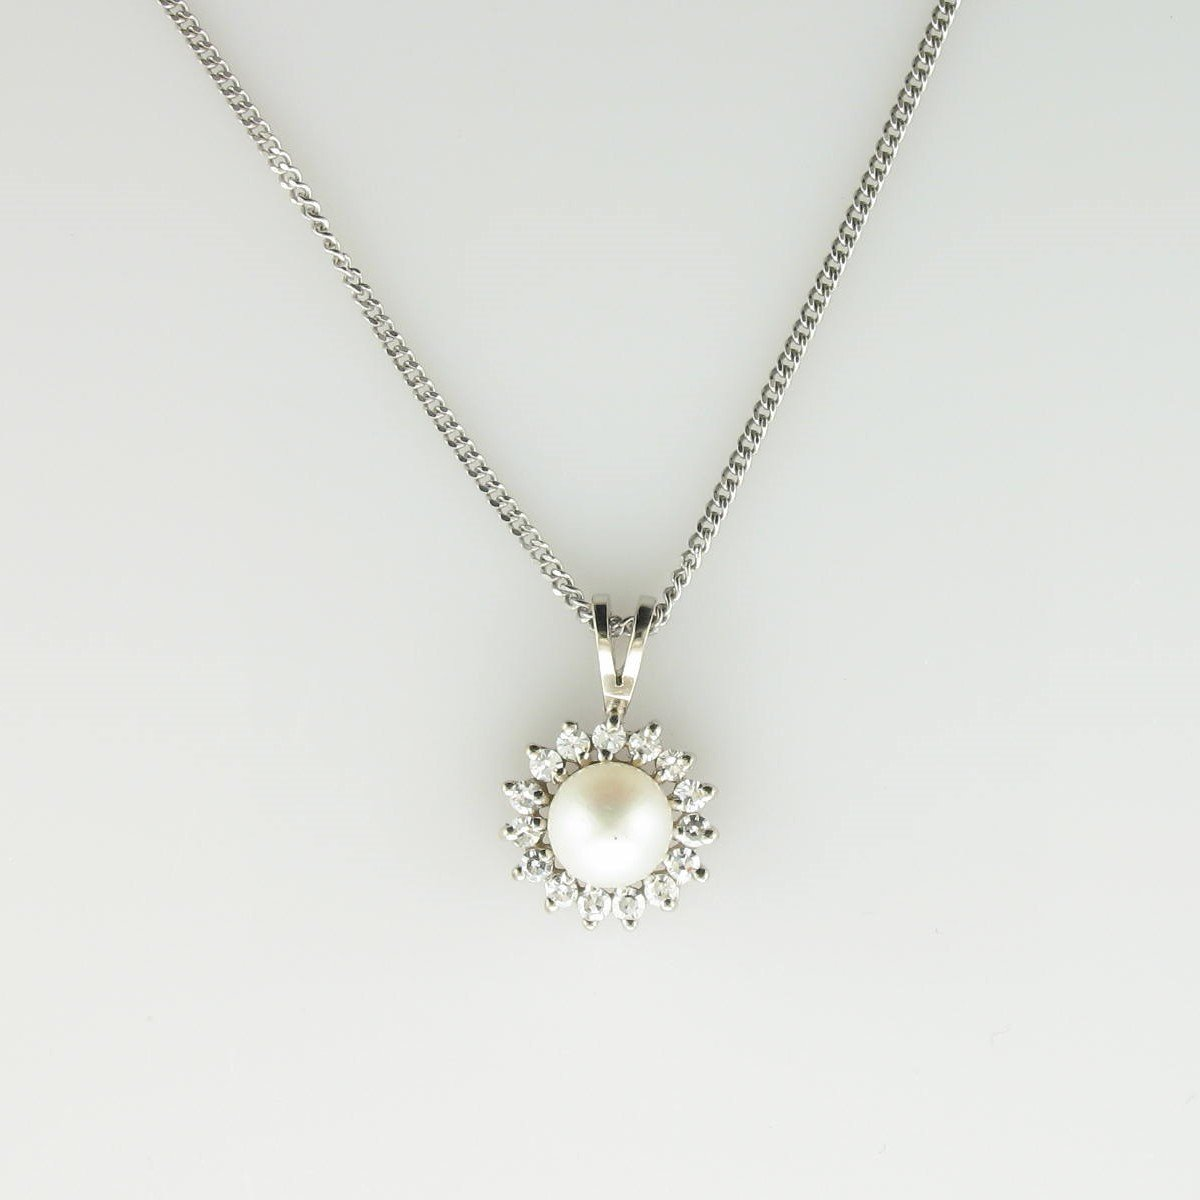 7mm Pearl and Diamond Halo Necklace set in 14k White Gold